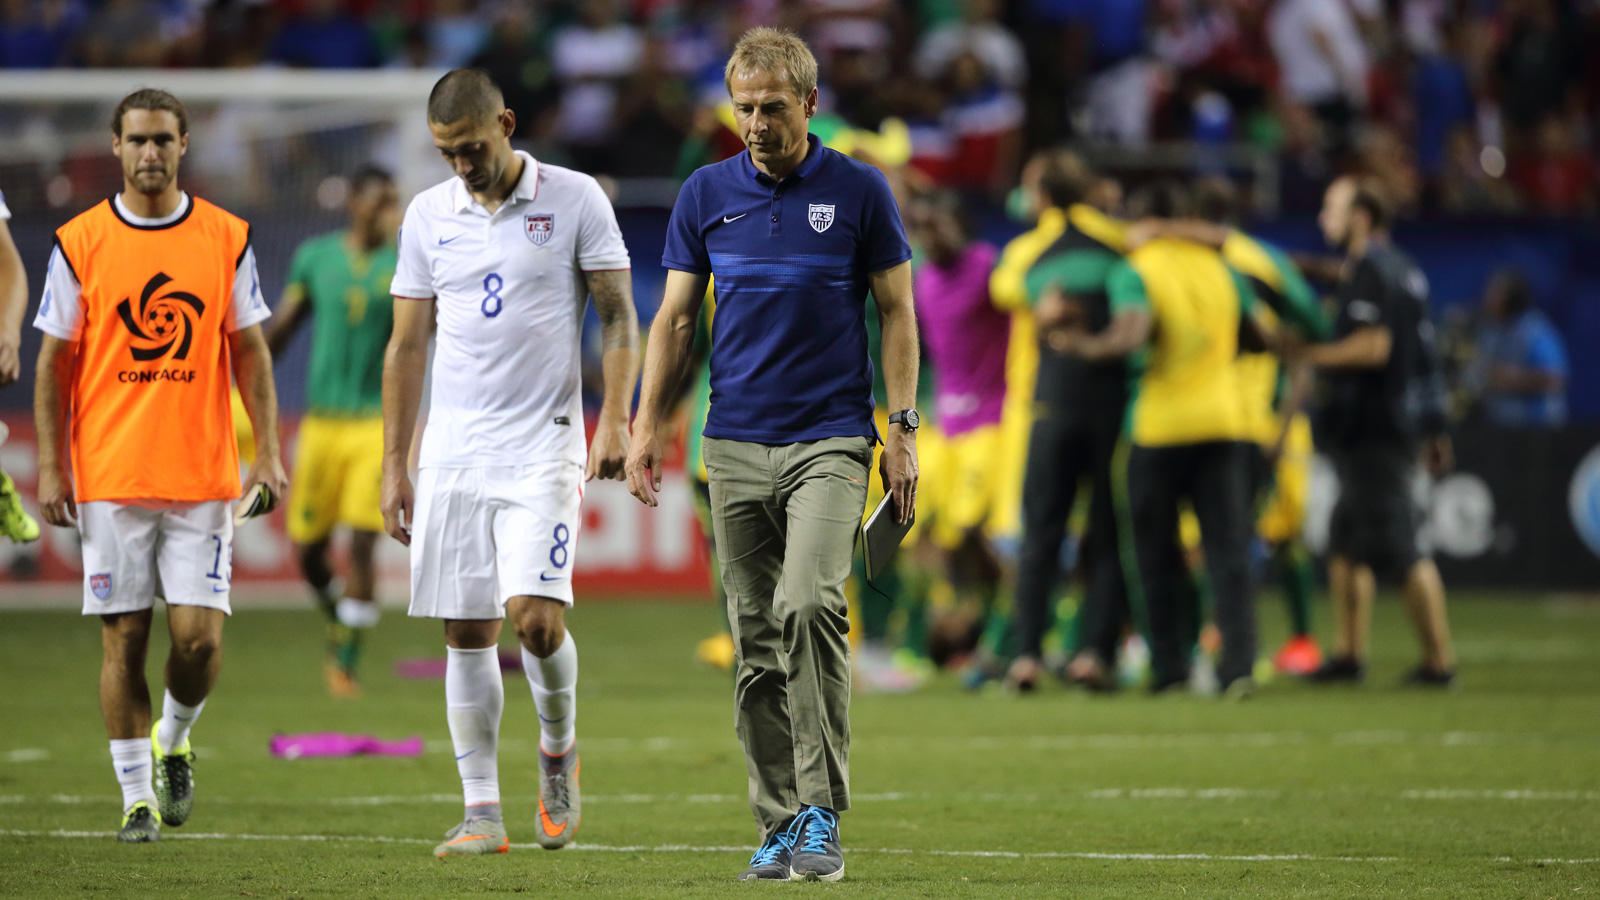 A downtrodden Clint Dempsey and Jurgen Klinsmann walk off the field as Jamaica celebrates a stunning 2-1 win over the USA in the CONCACAF Gold Cup semifinals.